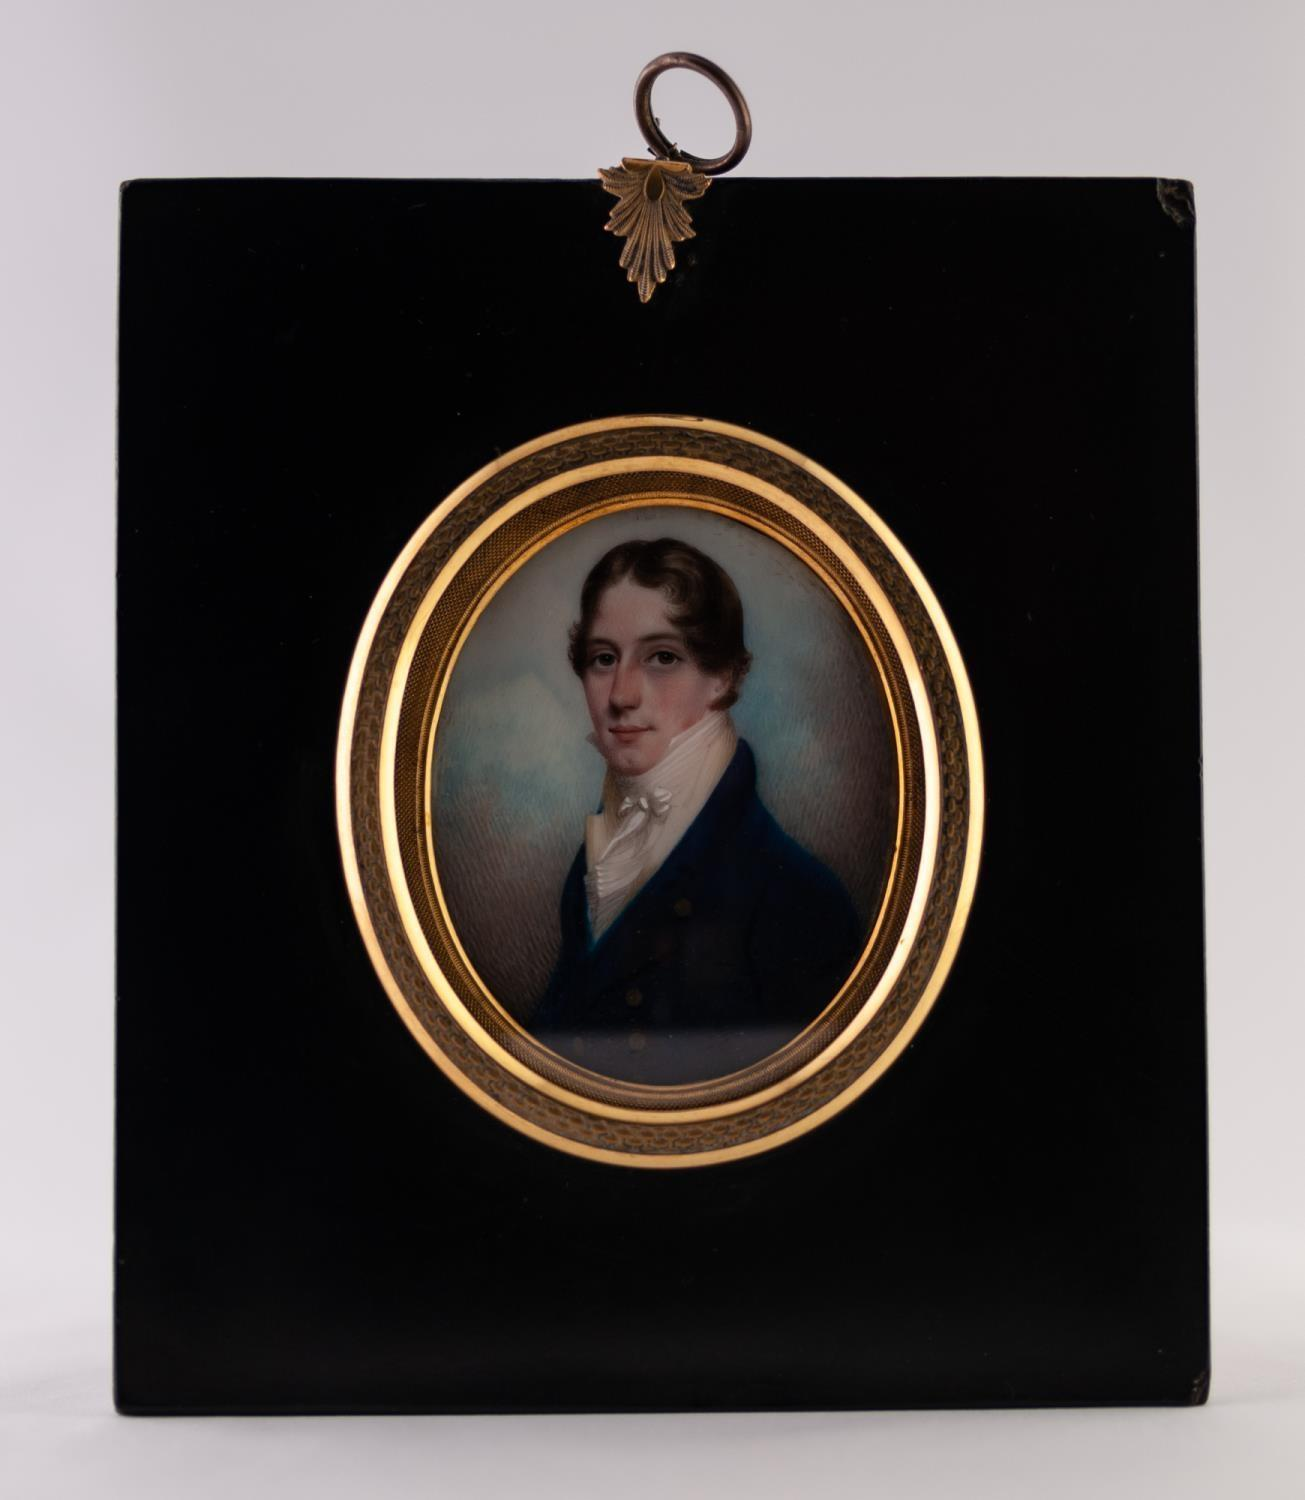 Lot 5 - ATTRIBUTED TO GEORGE ENGLEHEART (1750-1829), A GOOD OVAL PORTRAIT MINIATURE ON IVORY OF A YOUNG